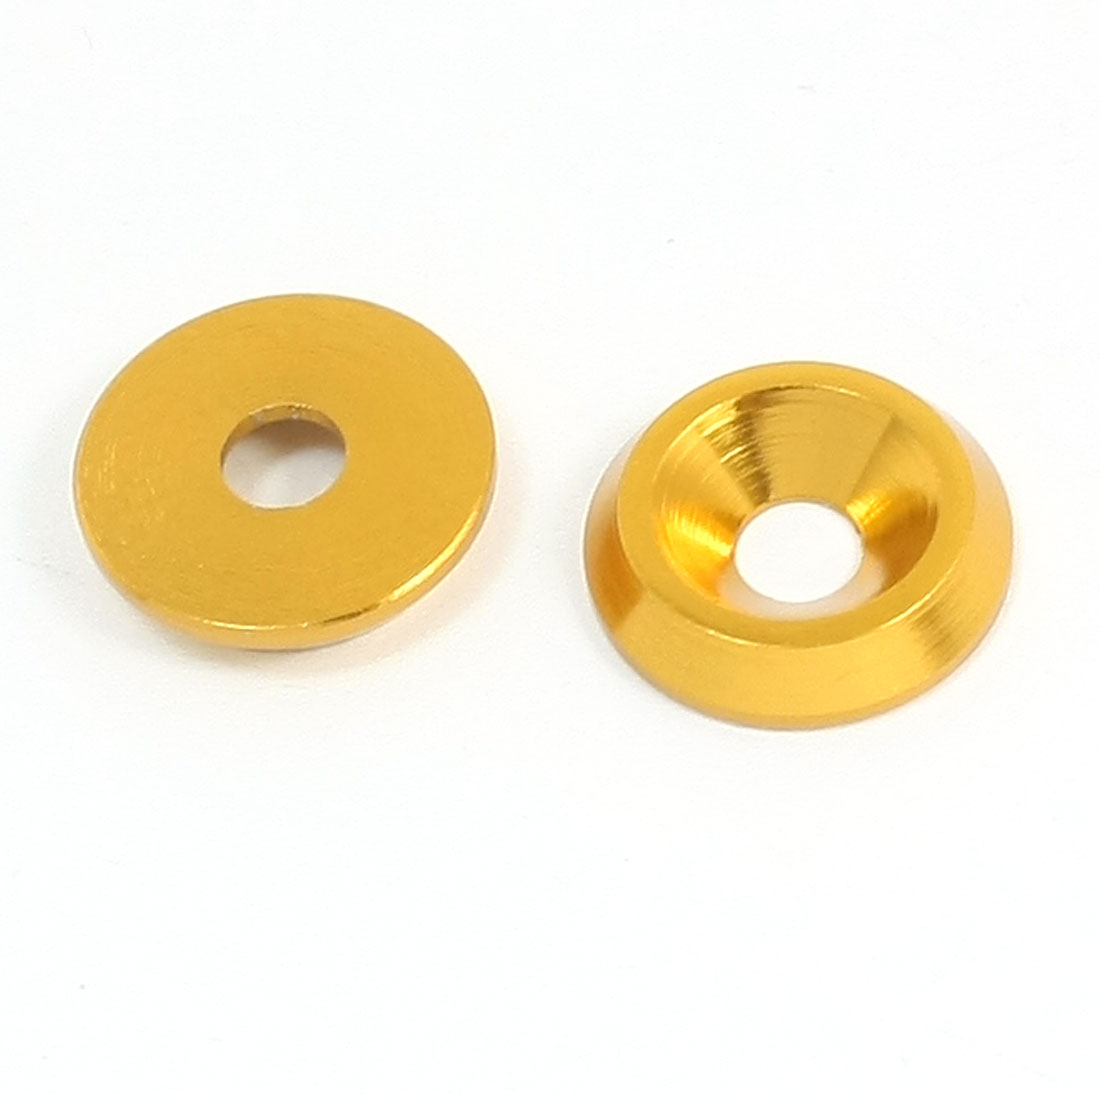 2Pcs 14mm Dia Gold Tone Aluminium Alloy Countersink RC Washer Spacer for 4mm Dia Shaft